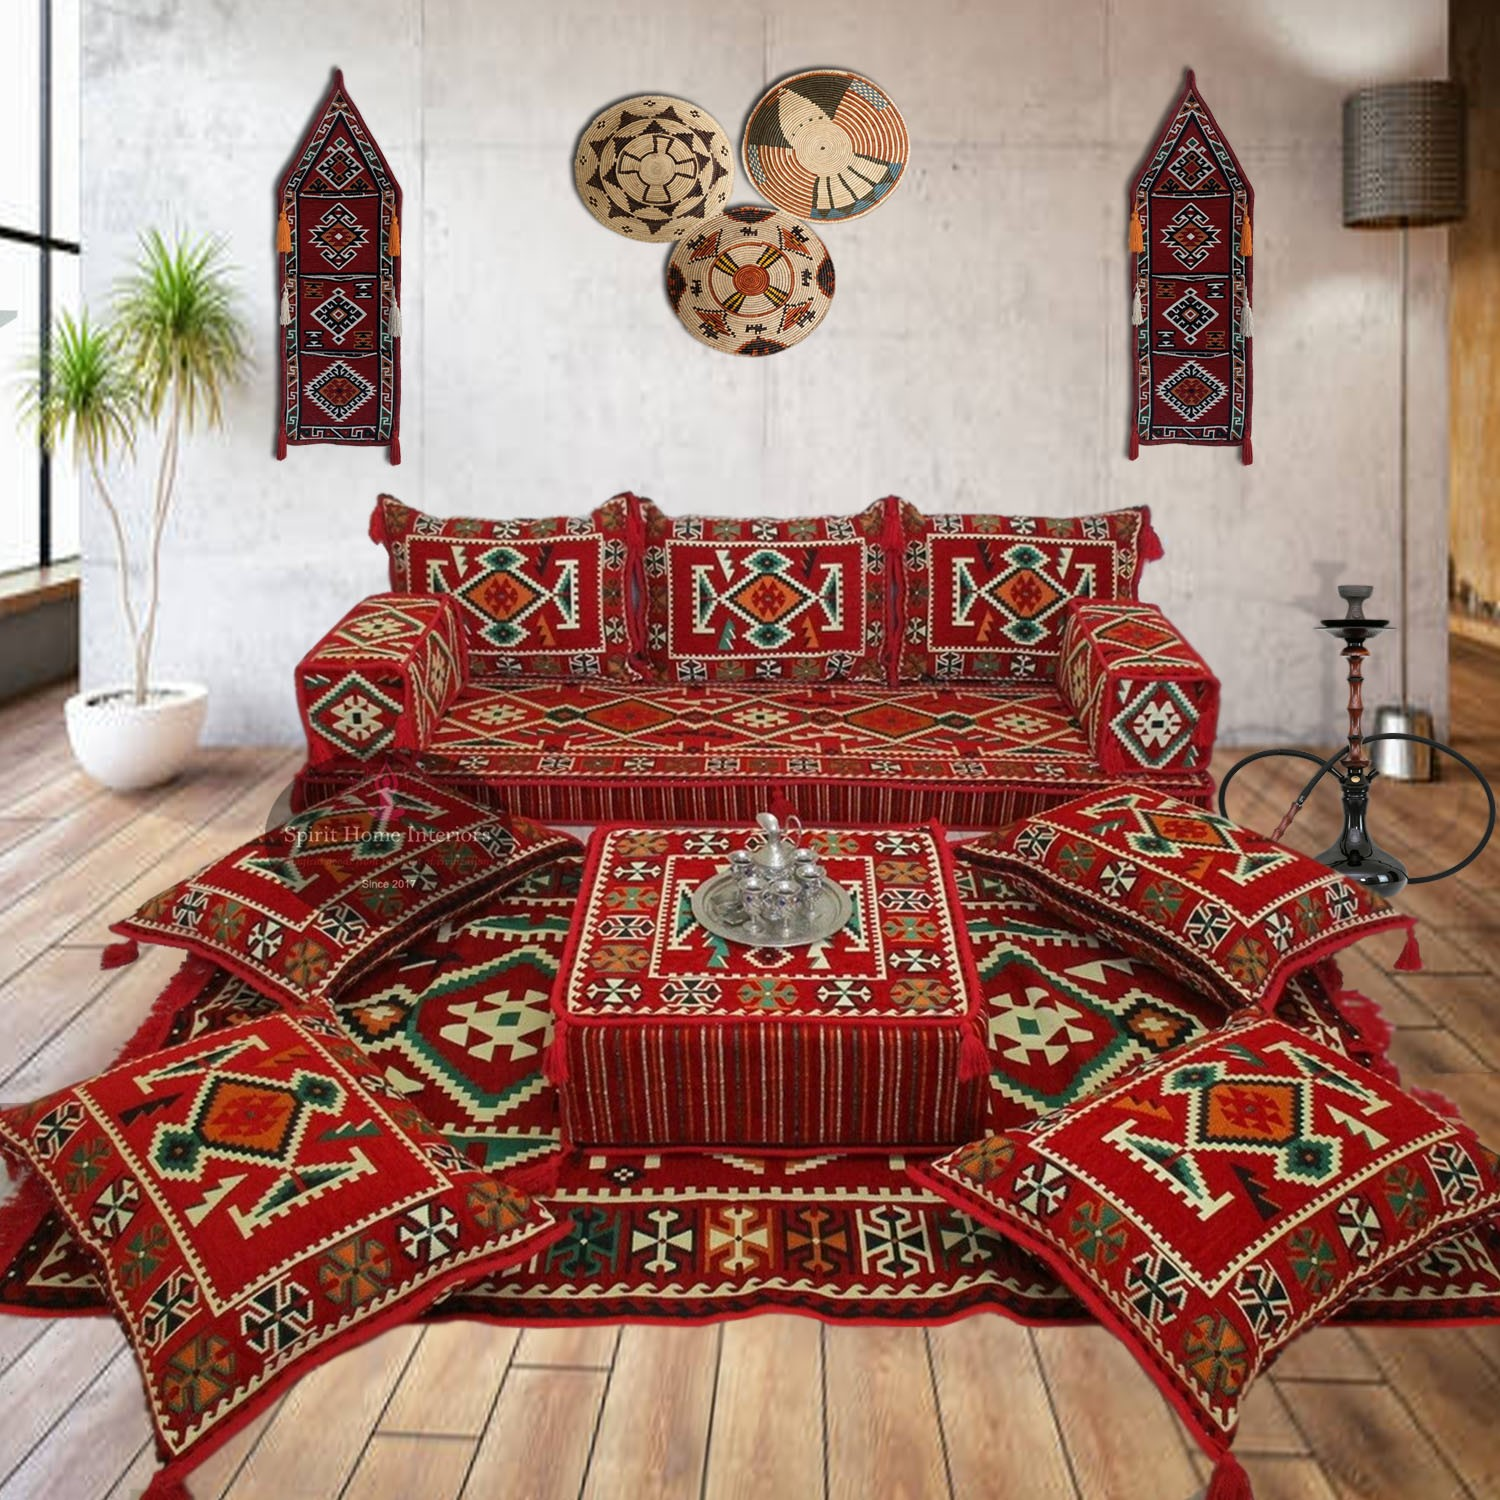 14 pieces Arabic style home furnishing set